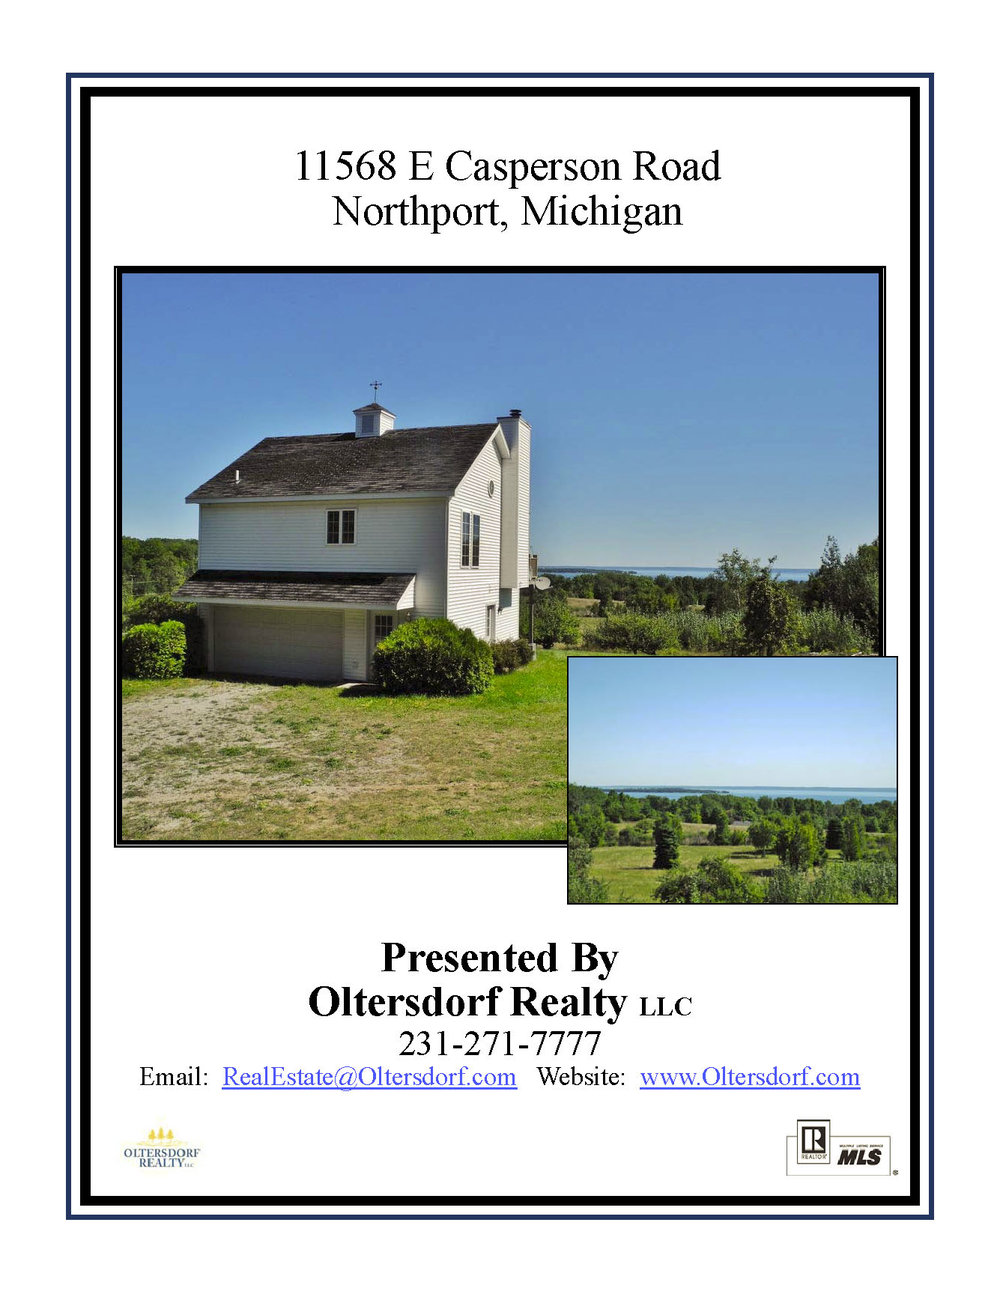 11568 E Casperson Road, Northport – For Sale by Oltersdorf Realty LLC, Leelanau County Realtors - Marketing Packet (1).jpg